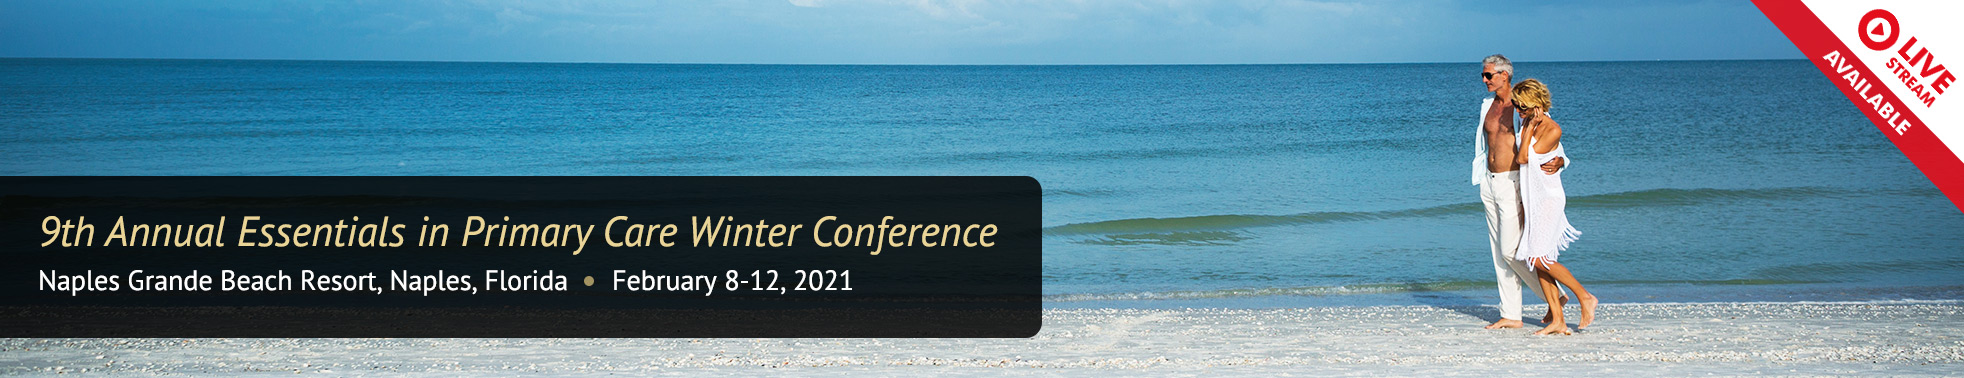 Naples Florida CME 2021